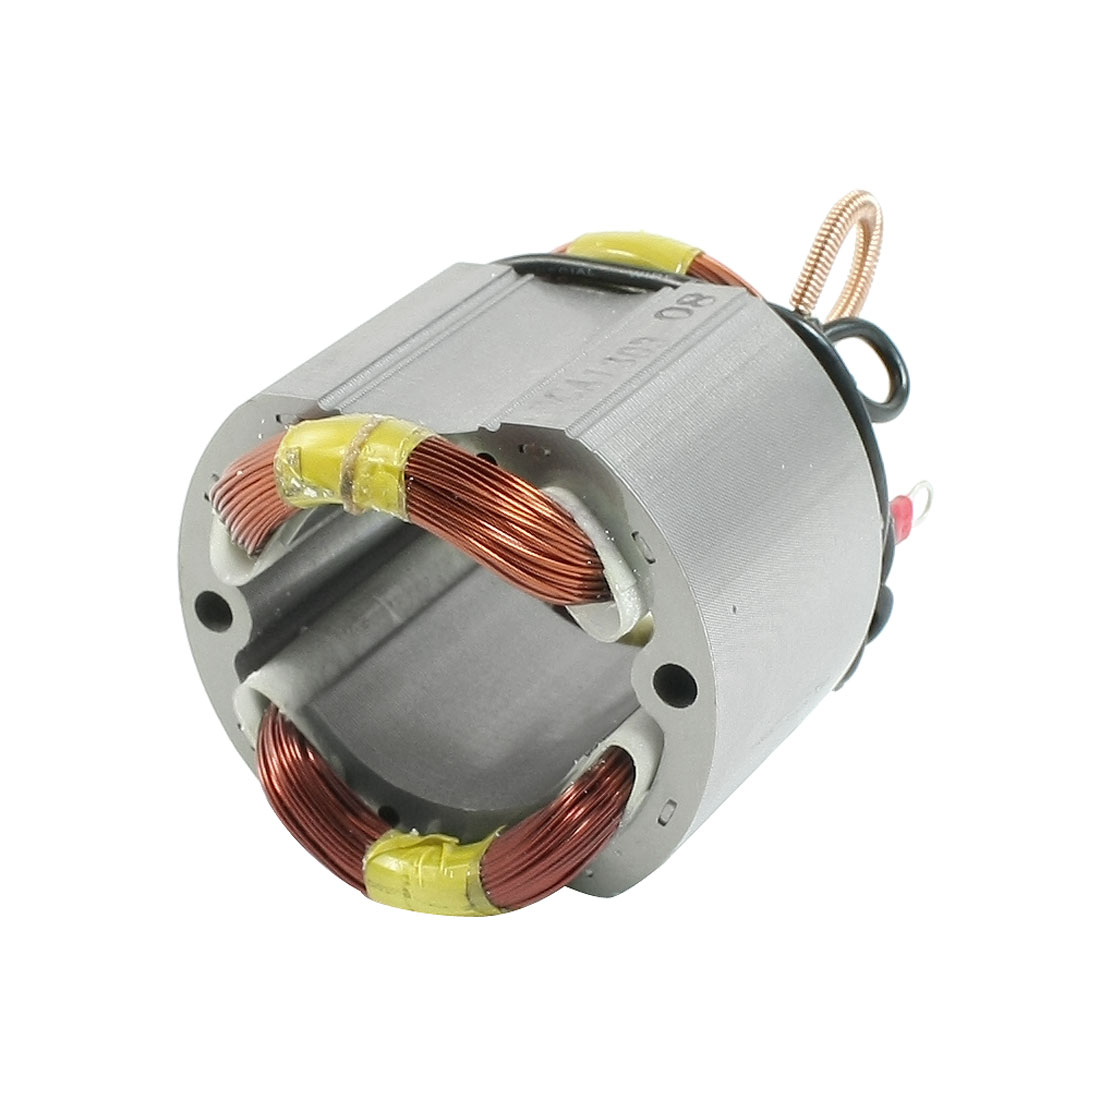 AC 220V Marble Cutter Power Part 40mm Core 4 Cable Motor Stator for Hitachi 4SA2